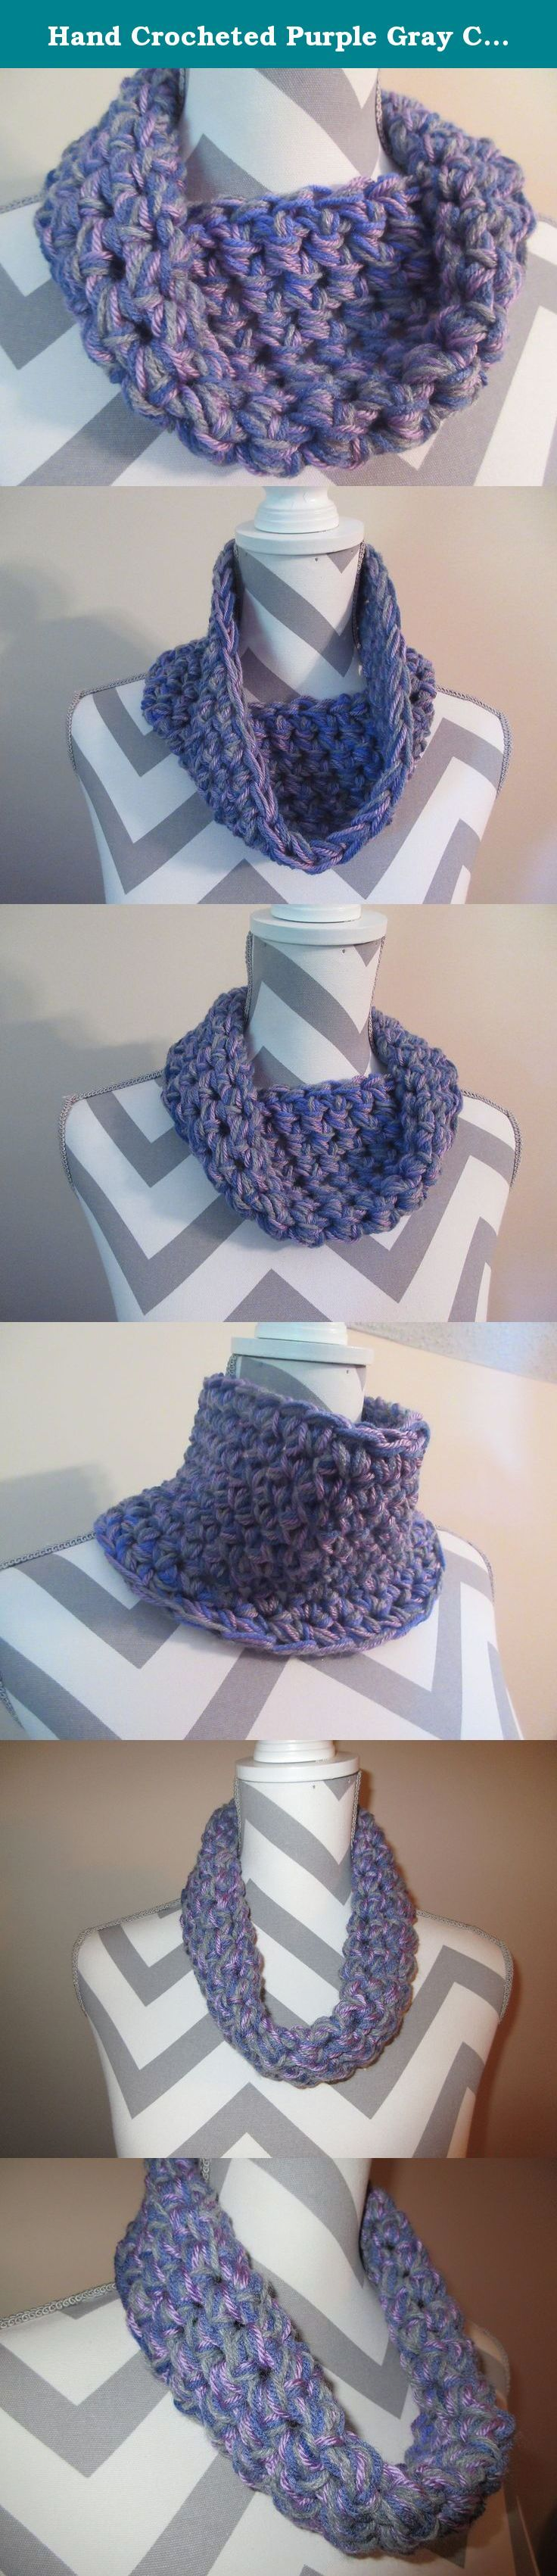 Hand Crocheted Purple Gray Chunky Cowl Scarf by Ladies Fashion Infinity Cowl Design Drape Down Fall Winter OSFA Handmade Gift for Her Gift Bag and Ribbon Included. Handmade Super Soft 3 strands of Gray, Light Purple and Dark Purple Blend Acrylic to make Chunky Scarf Hand Crocheted Cowl Infinity Design 24 inches circumference (hand crocheted together in one loop 5 1/2 inches tall can be worn as a neck warmer or turned down as a very soft warm scarf). Super soft luxe acrylic yarn. Washable…